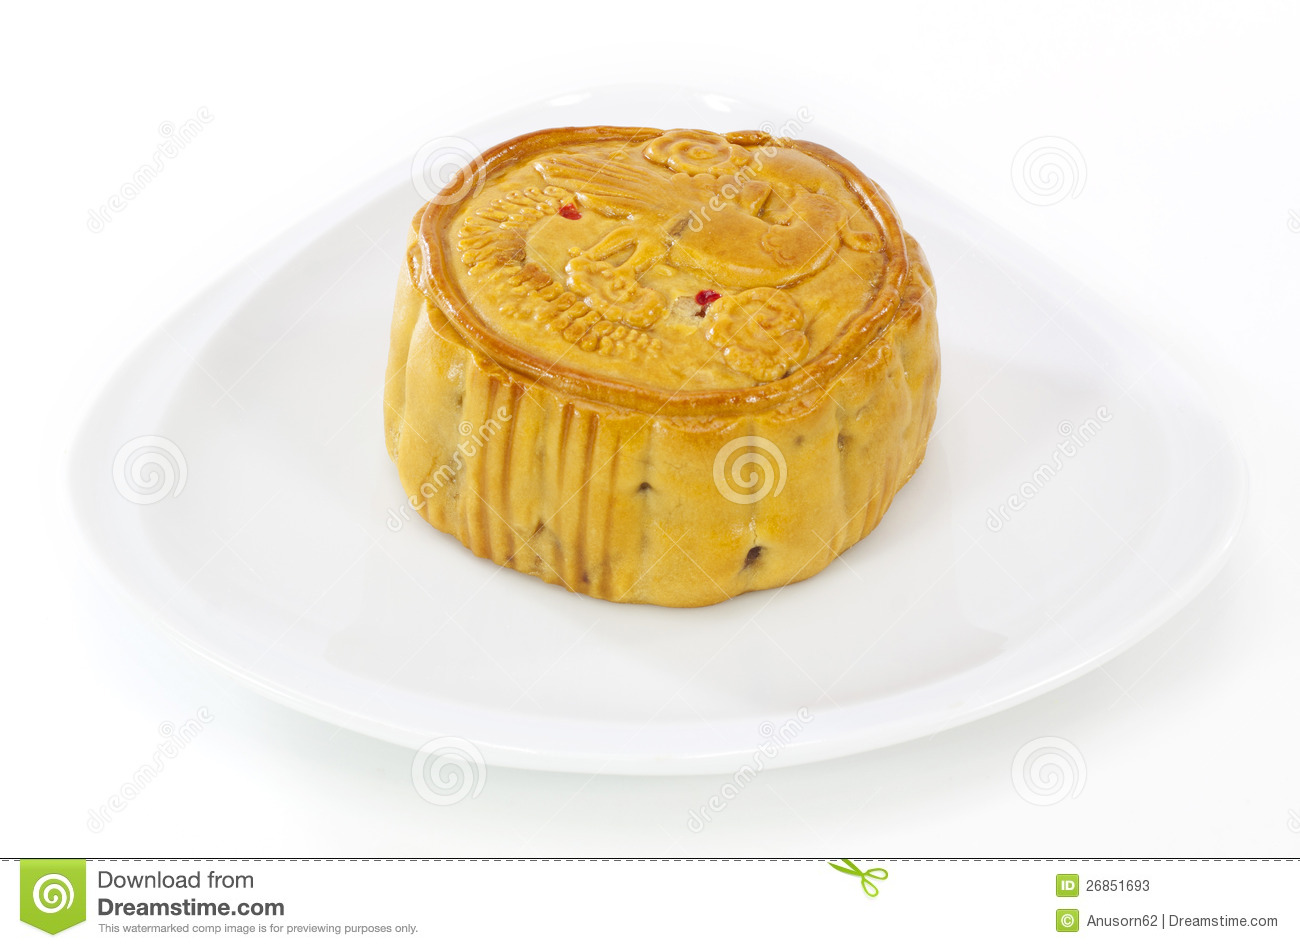 Moon Cake Stock Photos - Image: 26851693